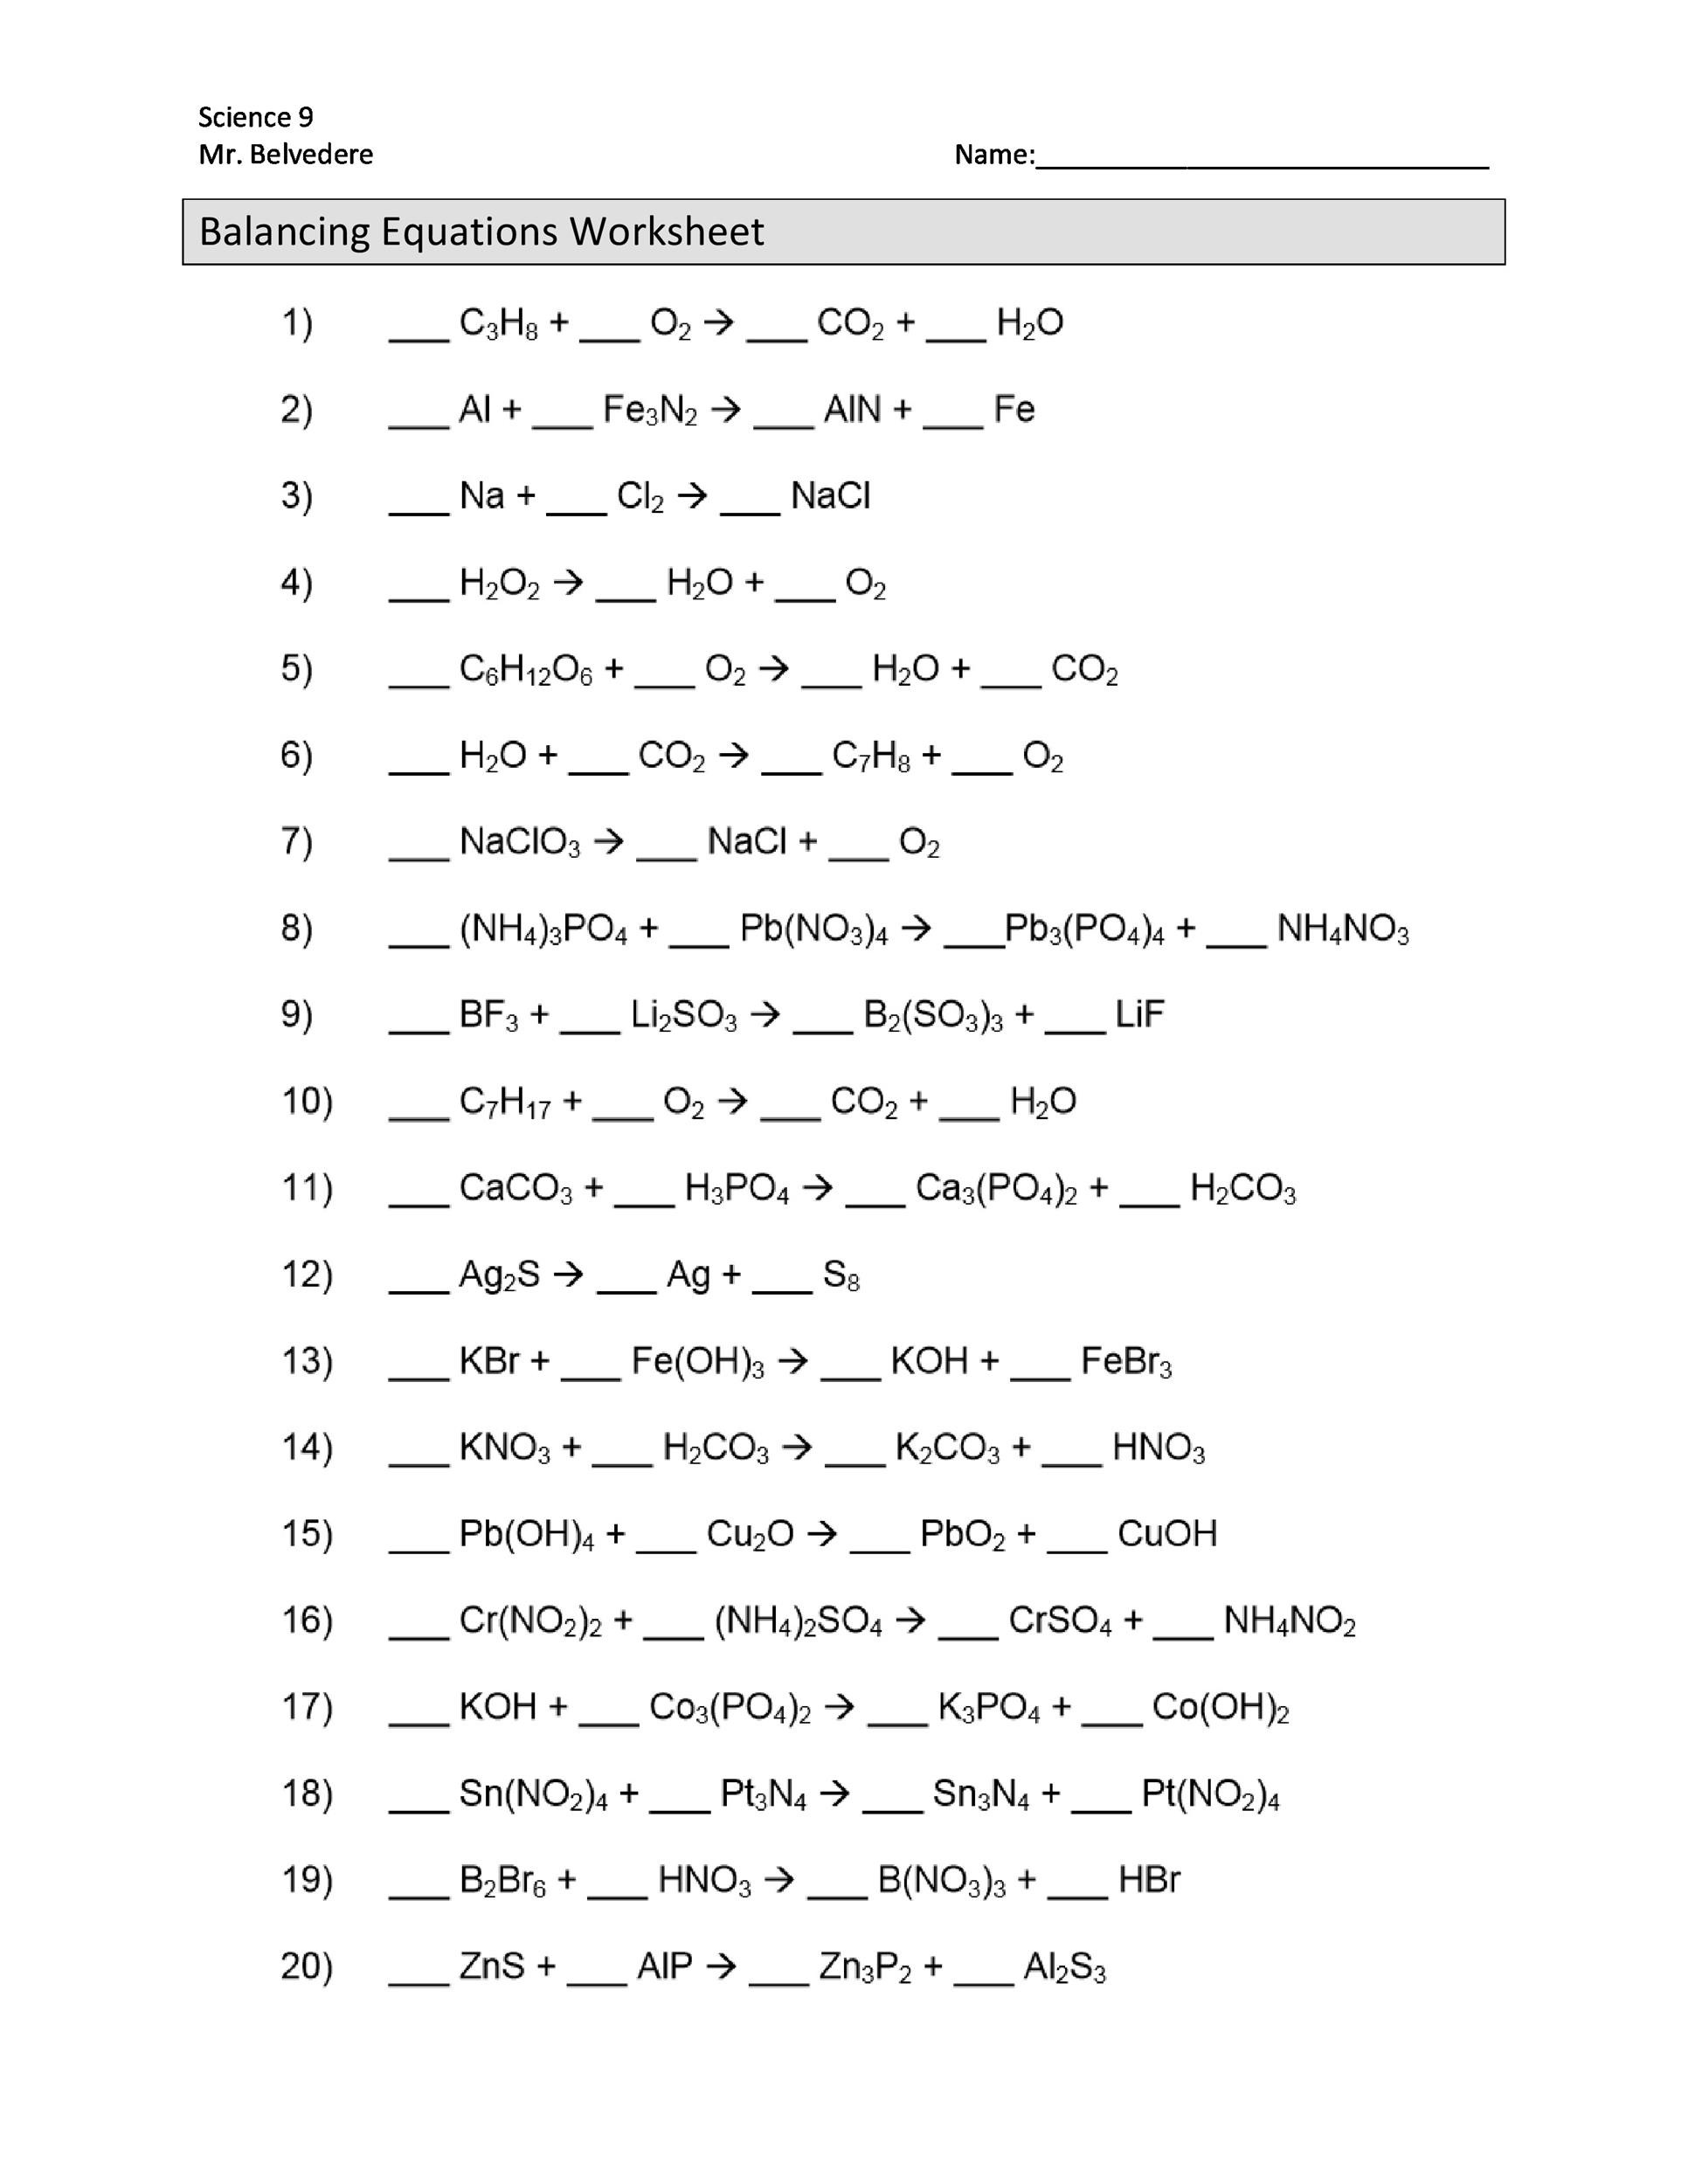 Bill Nye Chemical Reactions Worksheet Balancing Equation Worksheet with Answers Promotiontablecovers